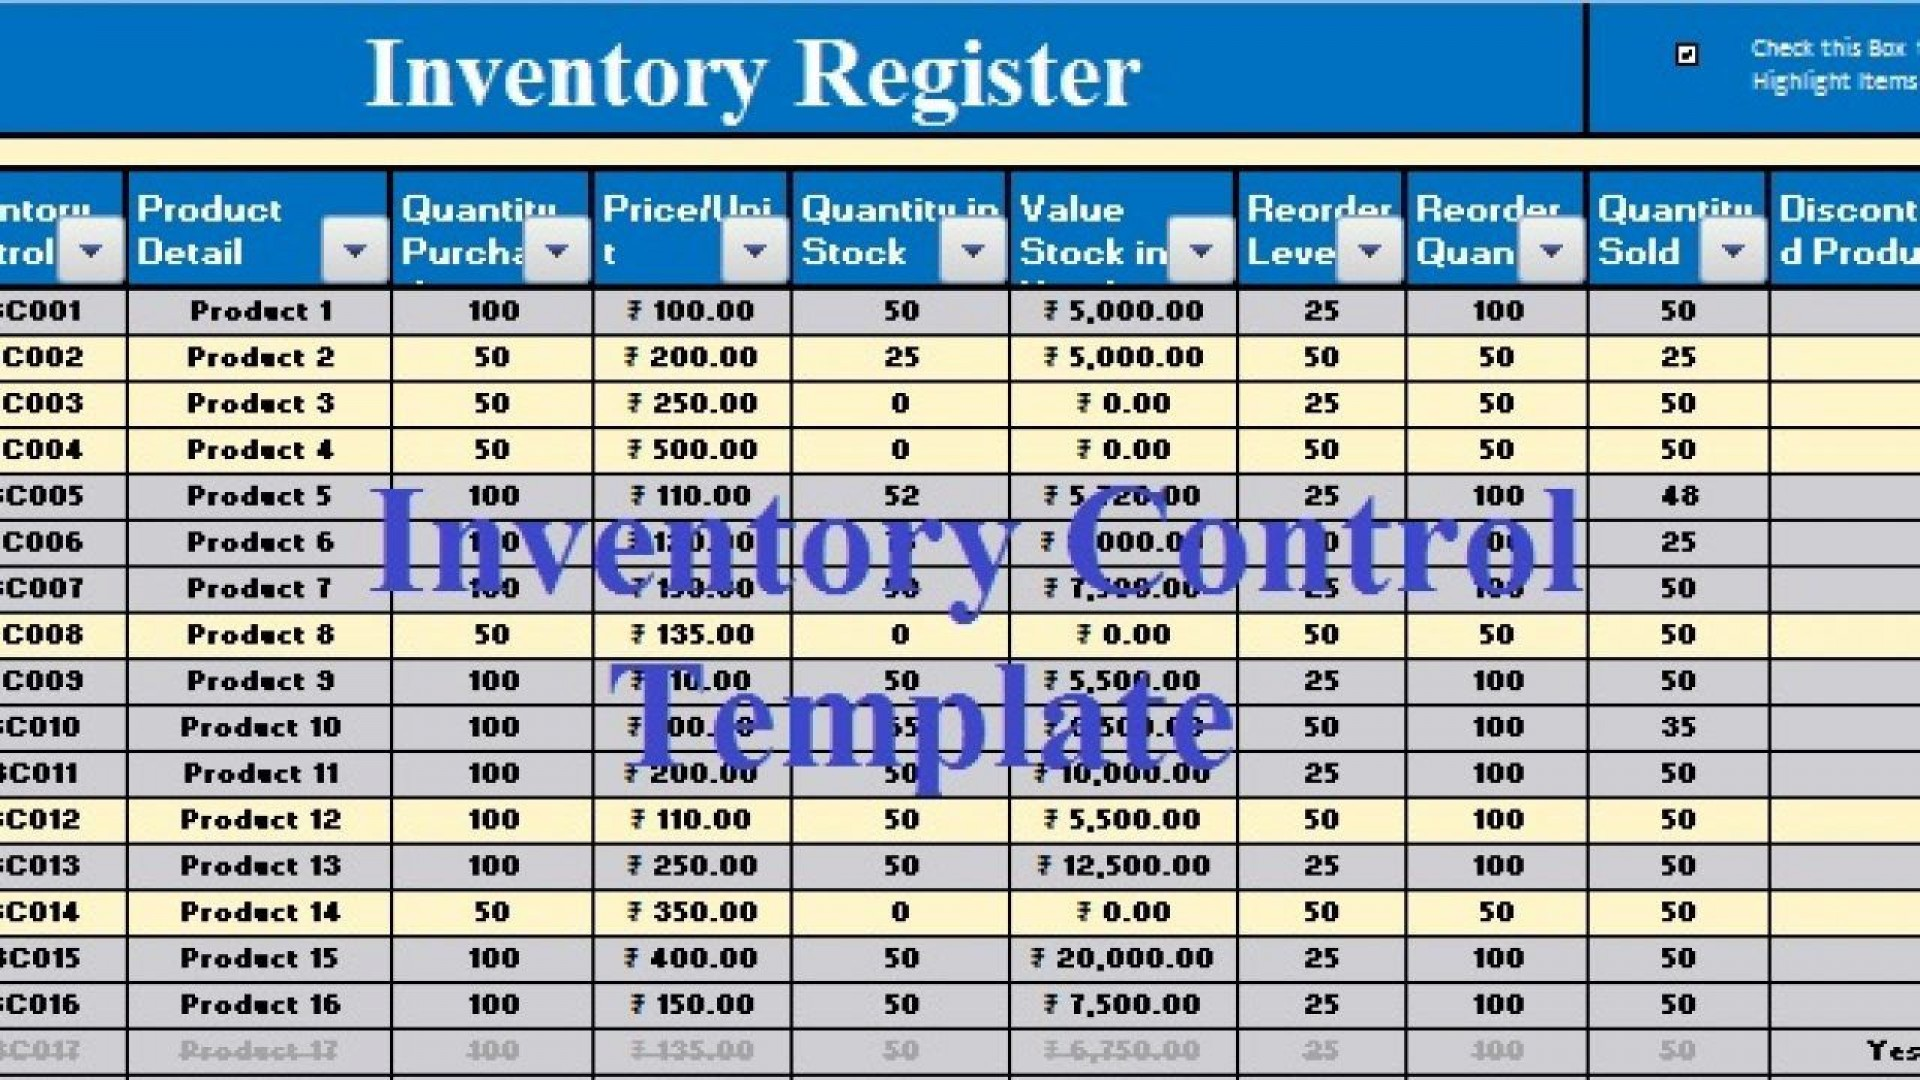 003 Unforgettable Stock Inventory Control Template Excel Free High Resolution 1920